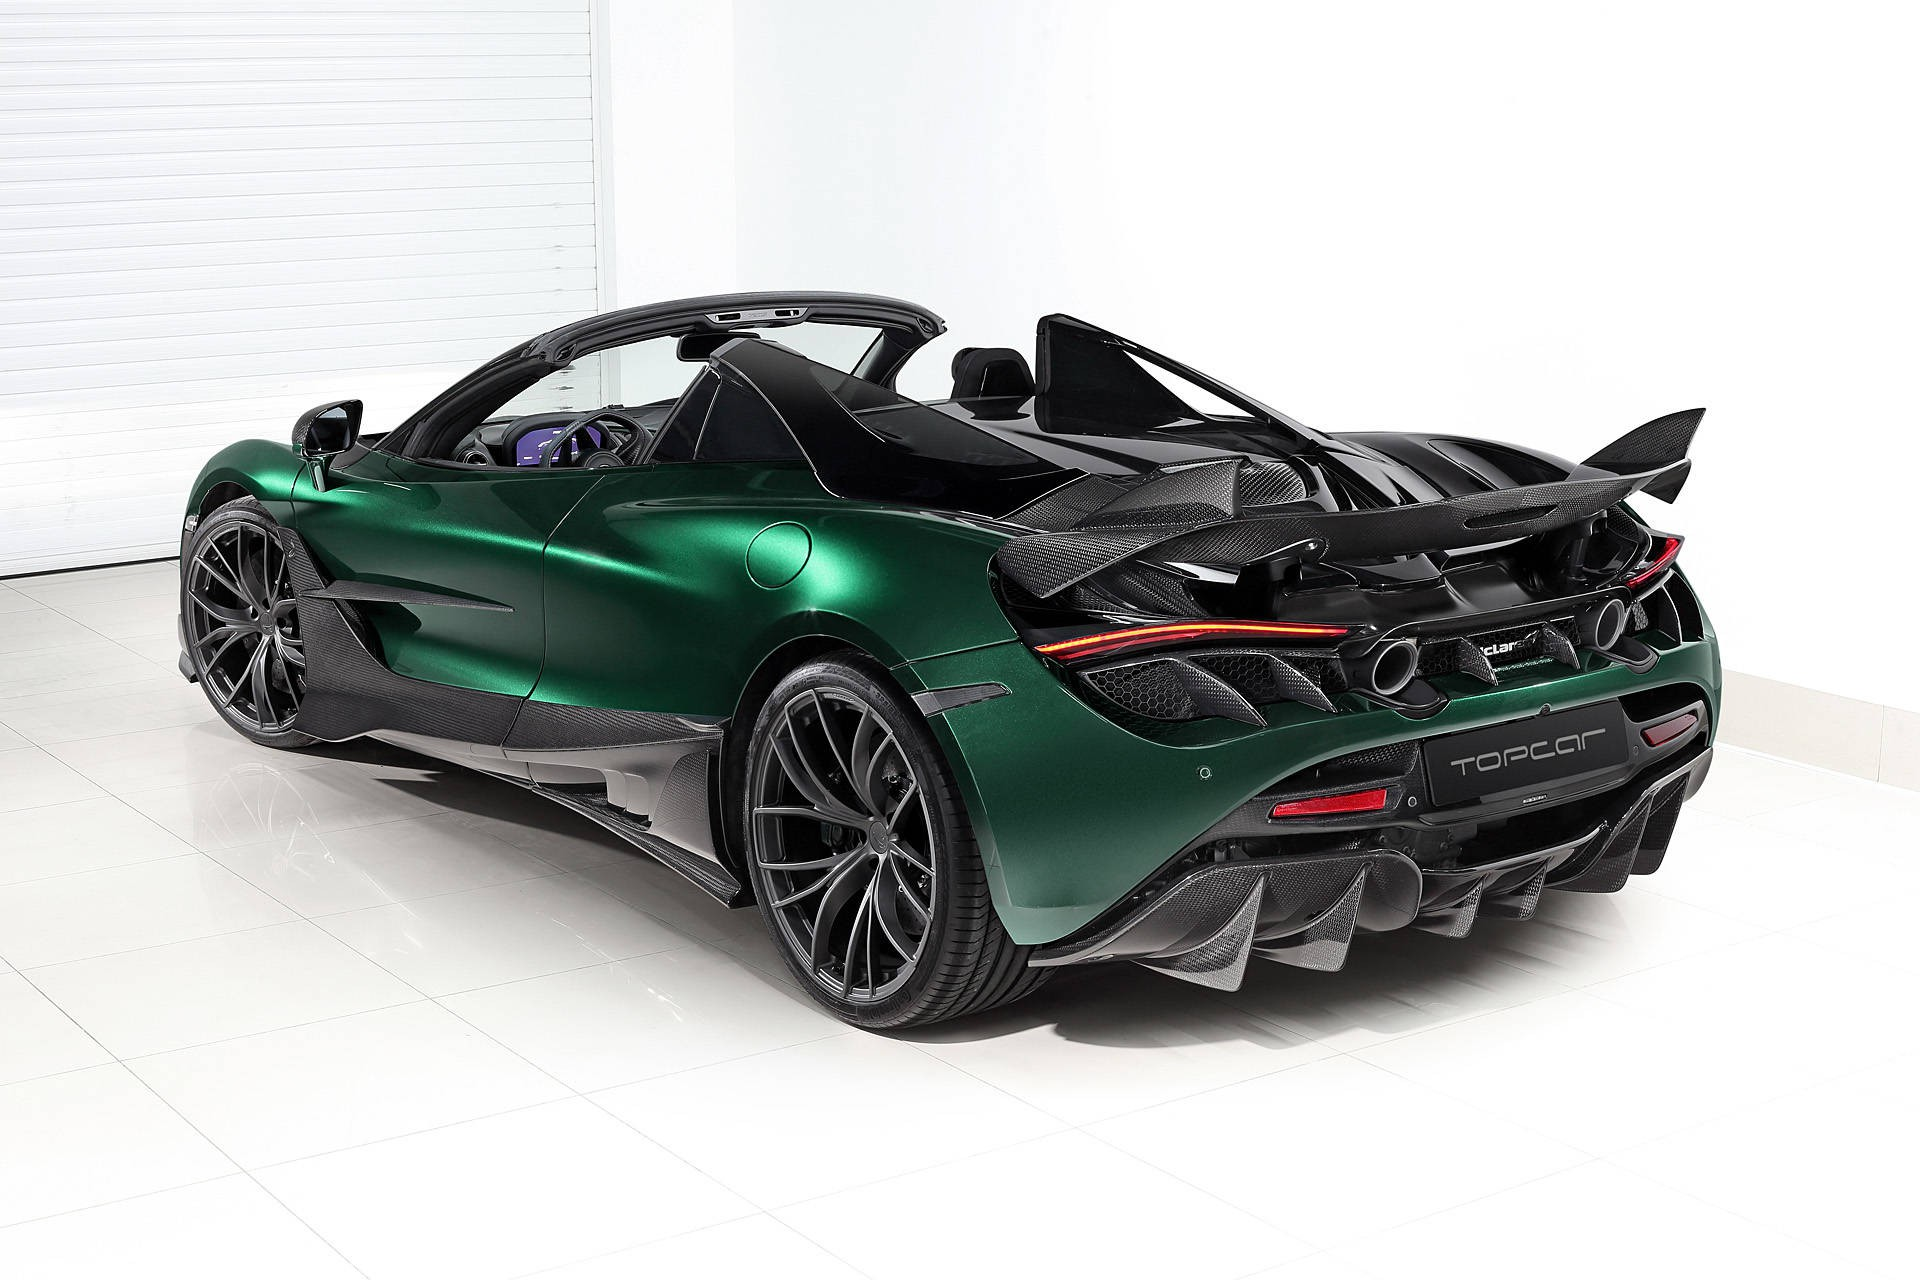 McLaren-720S-Spider-Fury-by-TopCar-for-sale-7